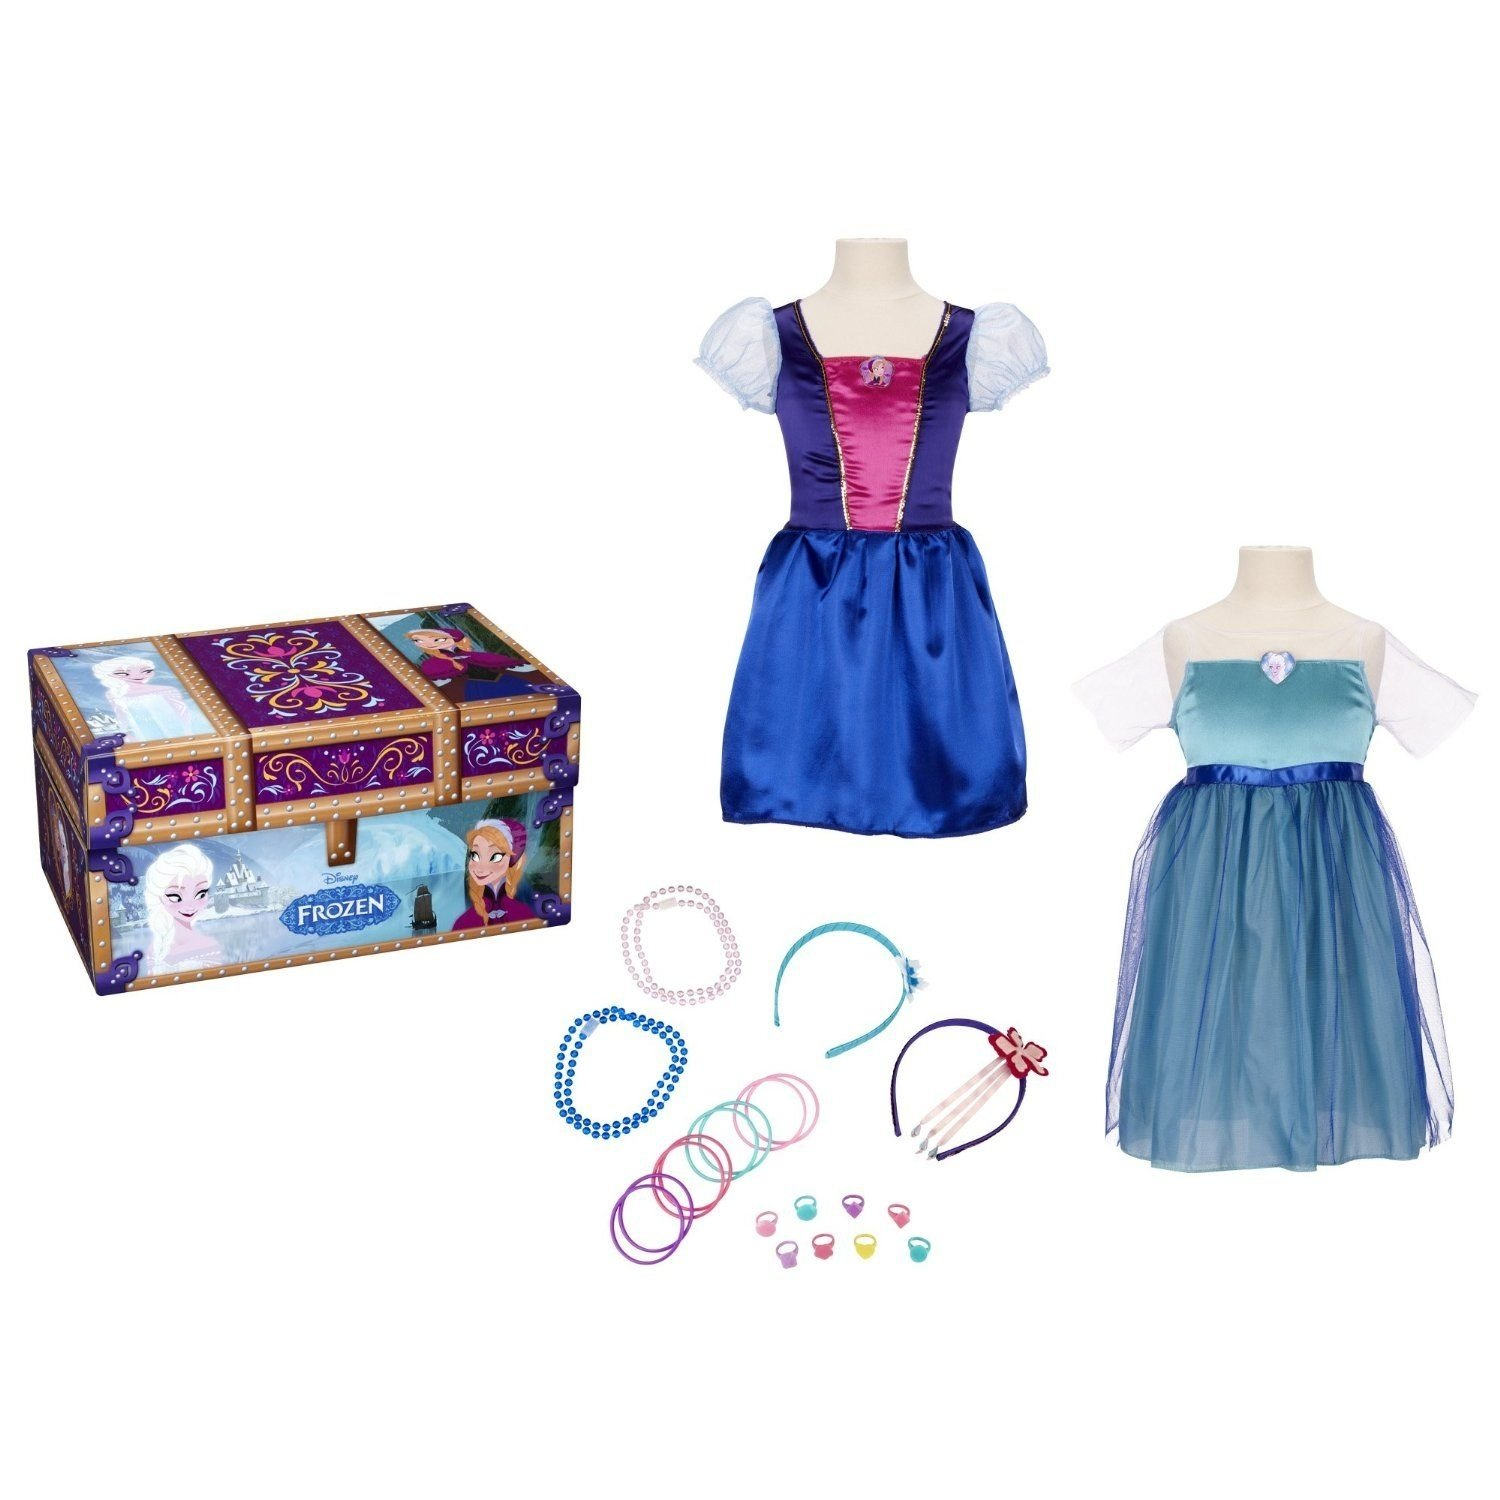 10 Beautiful Gift Ideas For 4 Year Old Girl best gifts for 4 year old girls in 2017 disney frozen and disney 2 2020